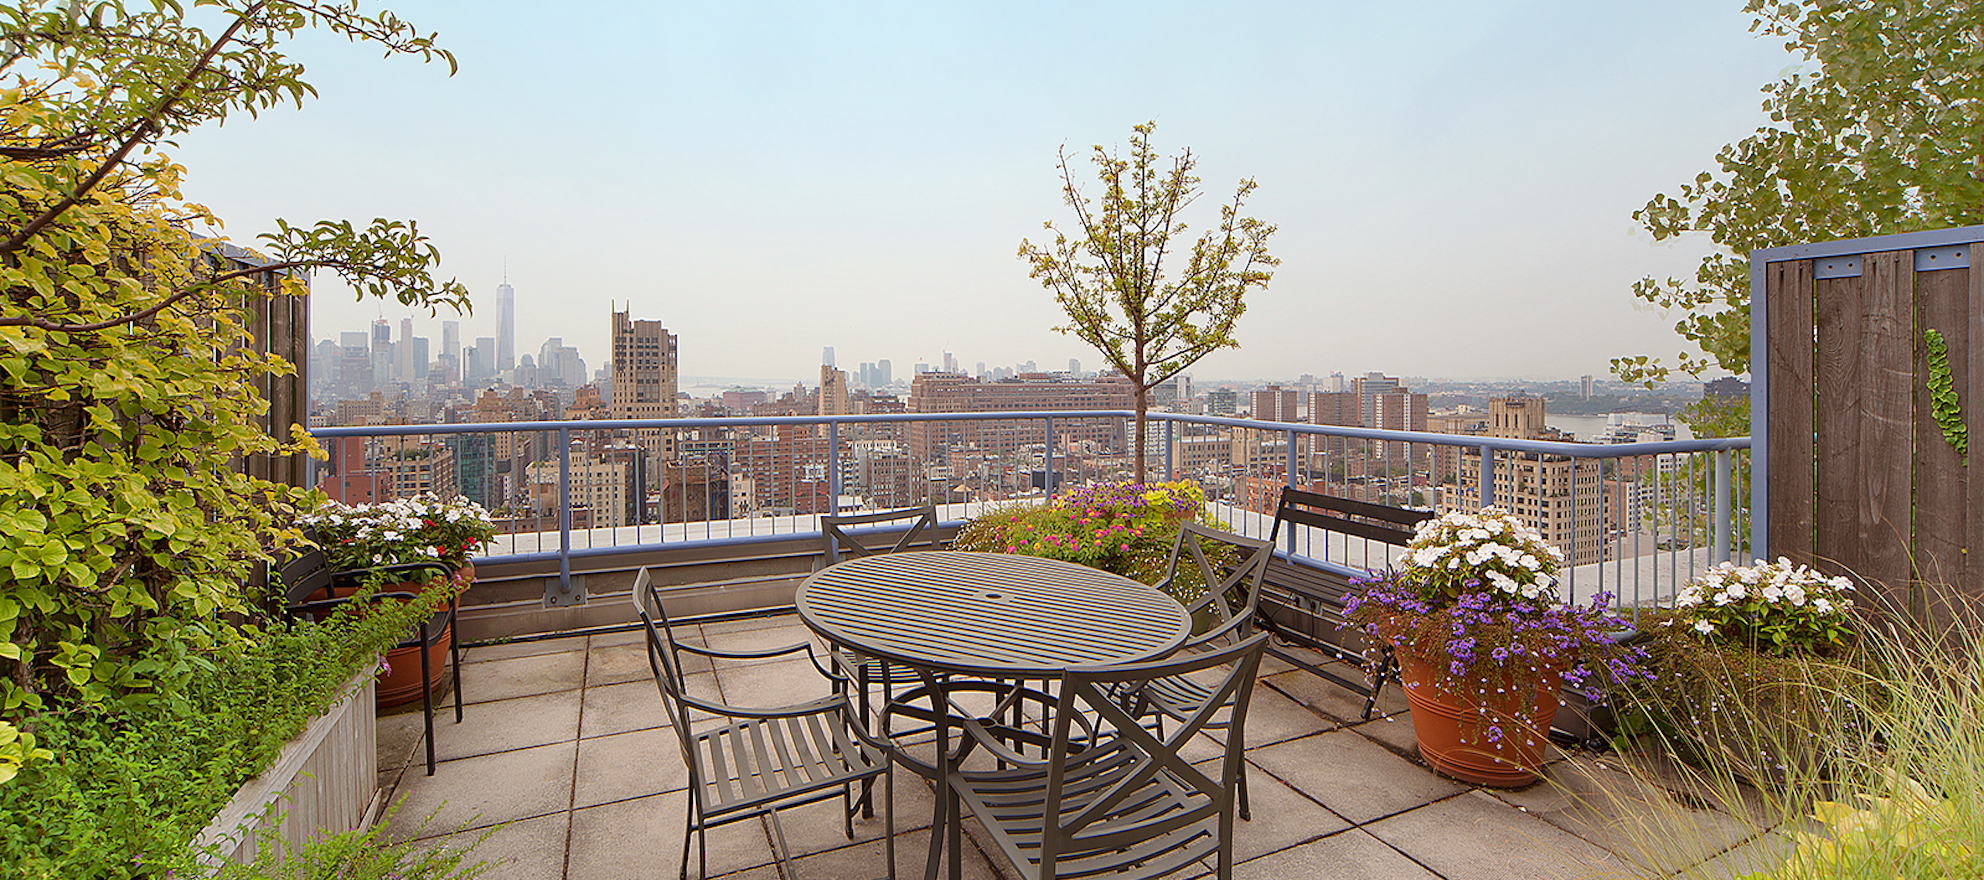 Luxury listing of the day: 2-bedroom condo penthouse in NYC